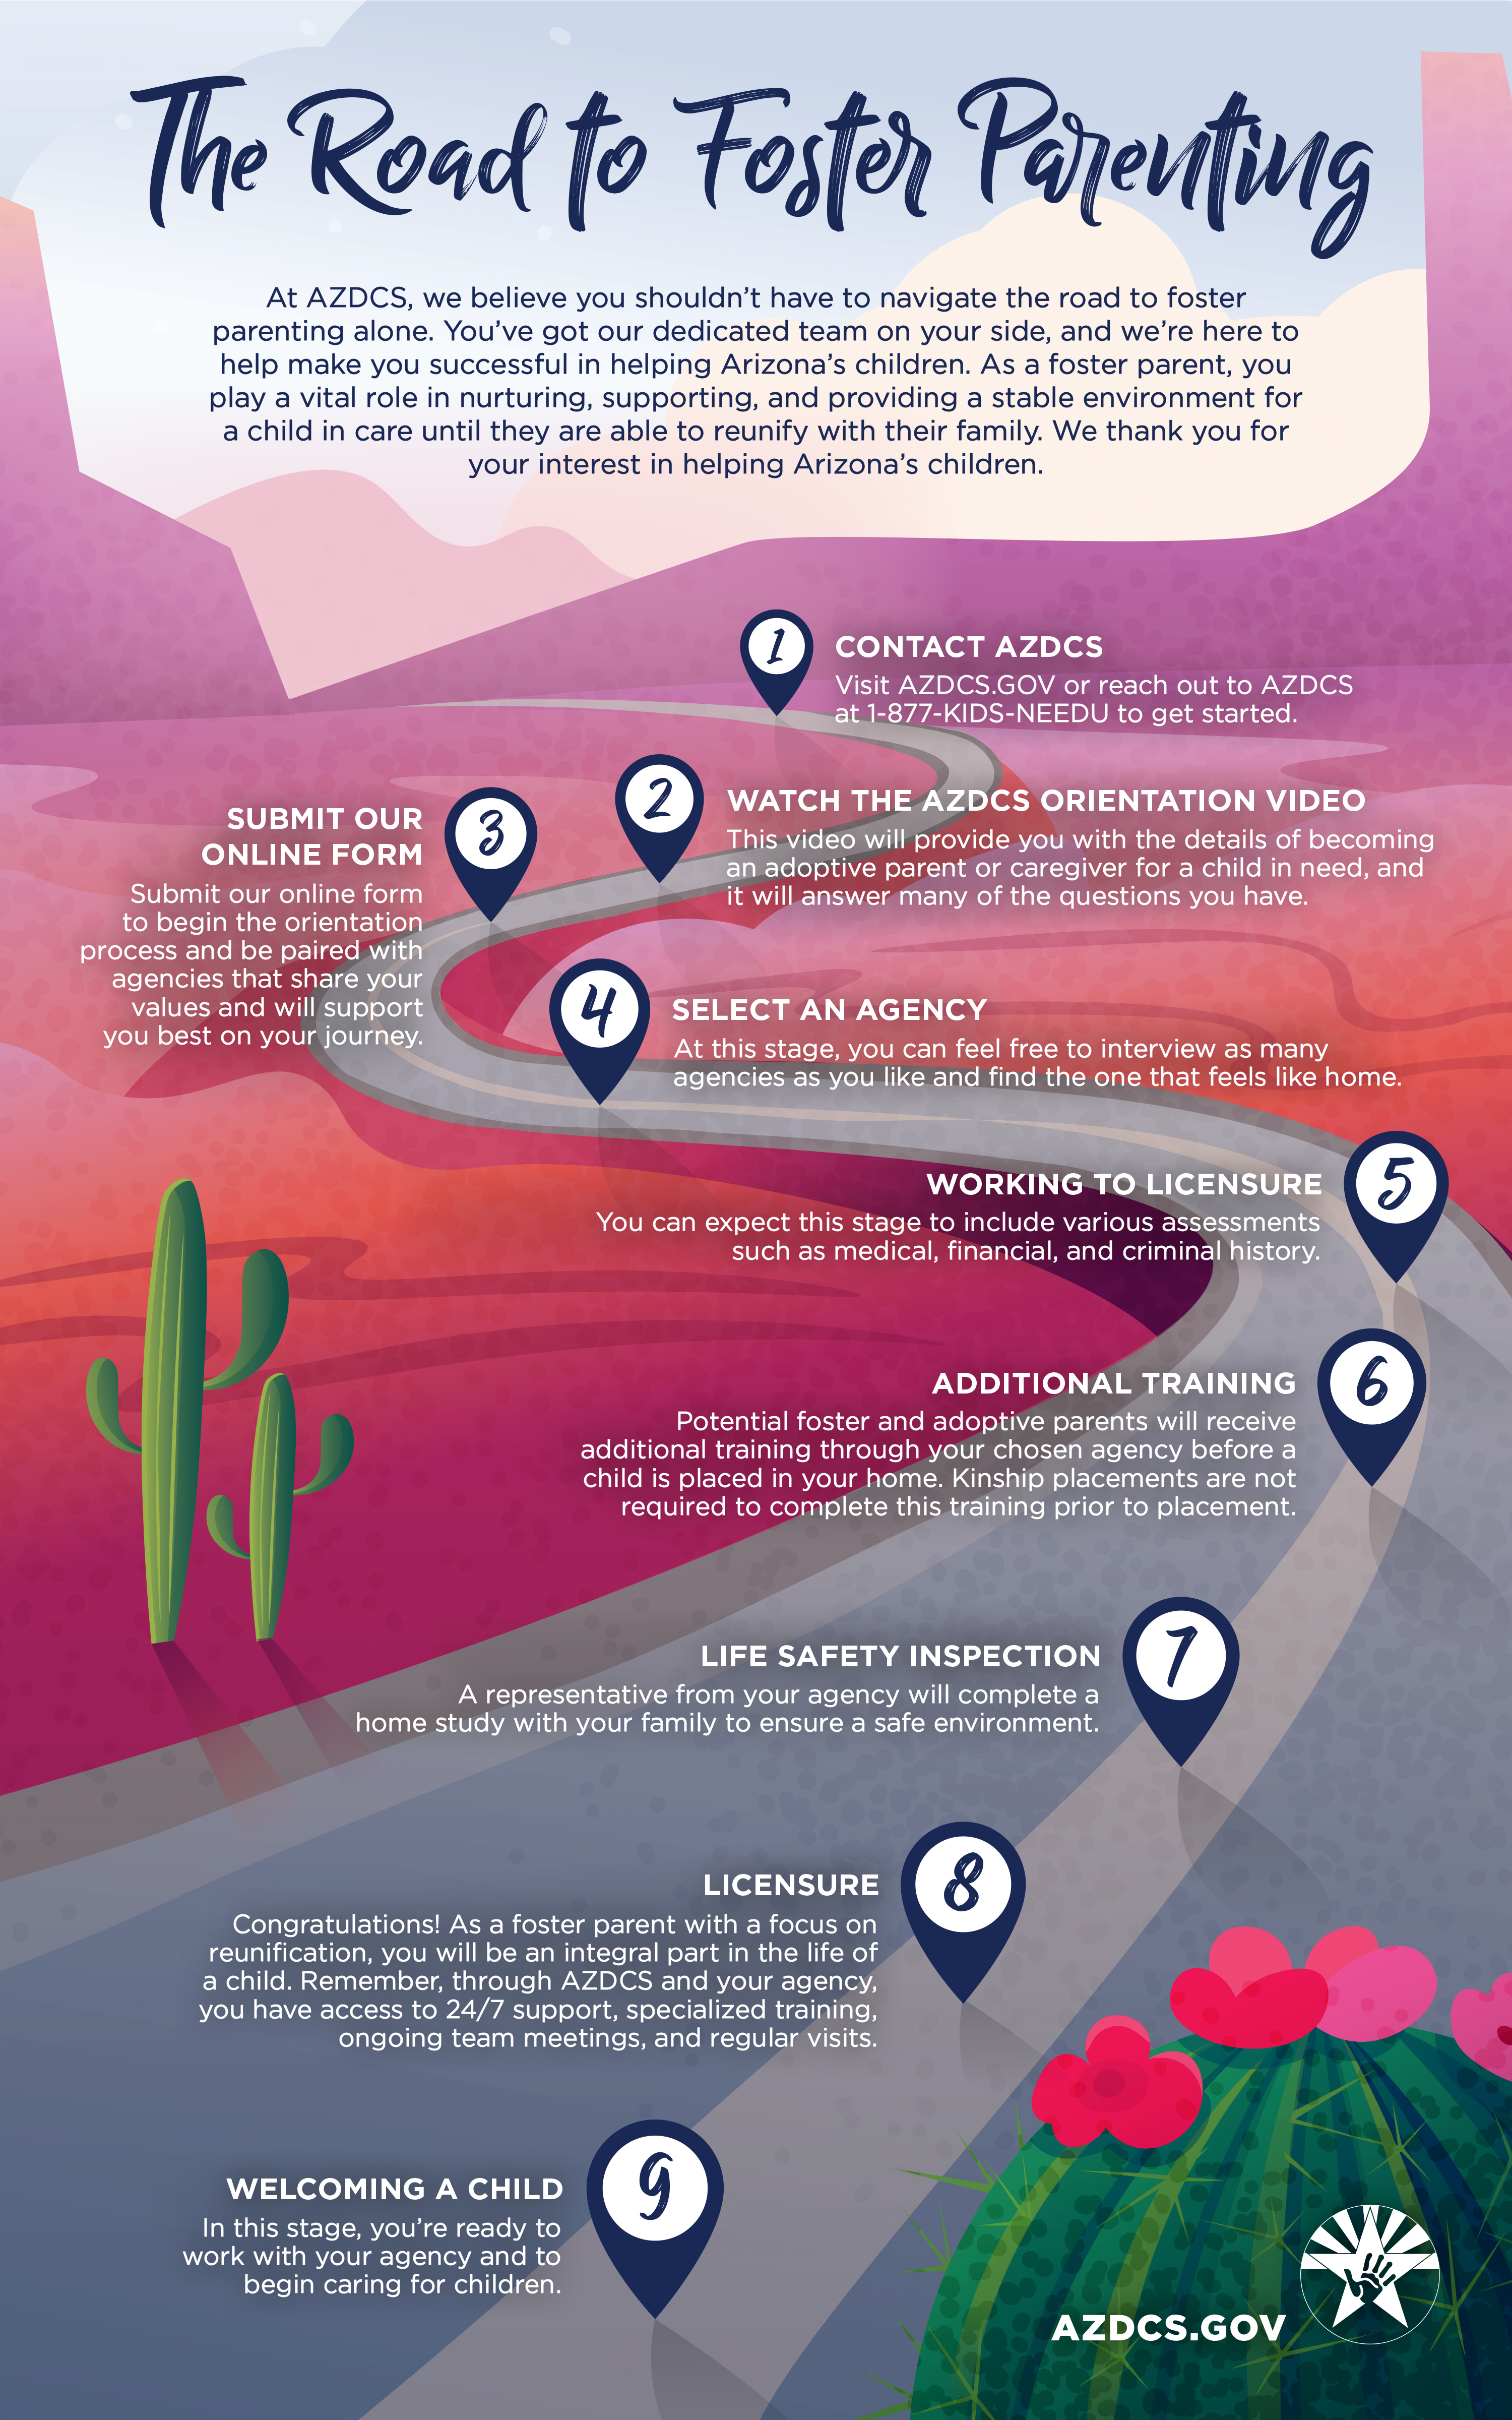 The road to foster parenting infographic